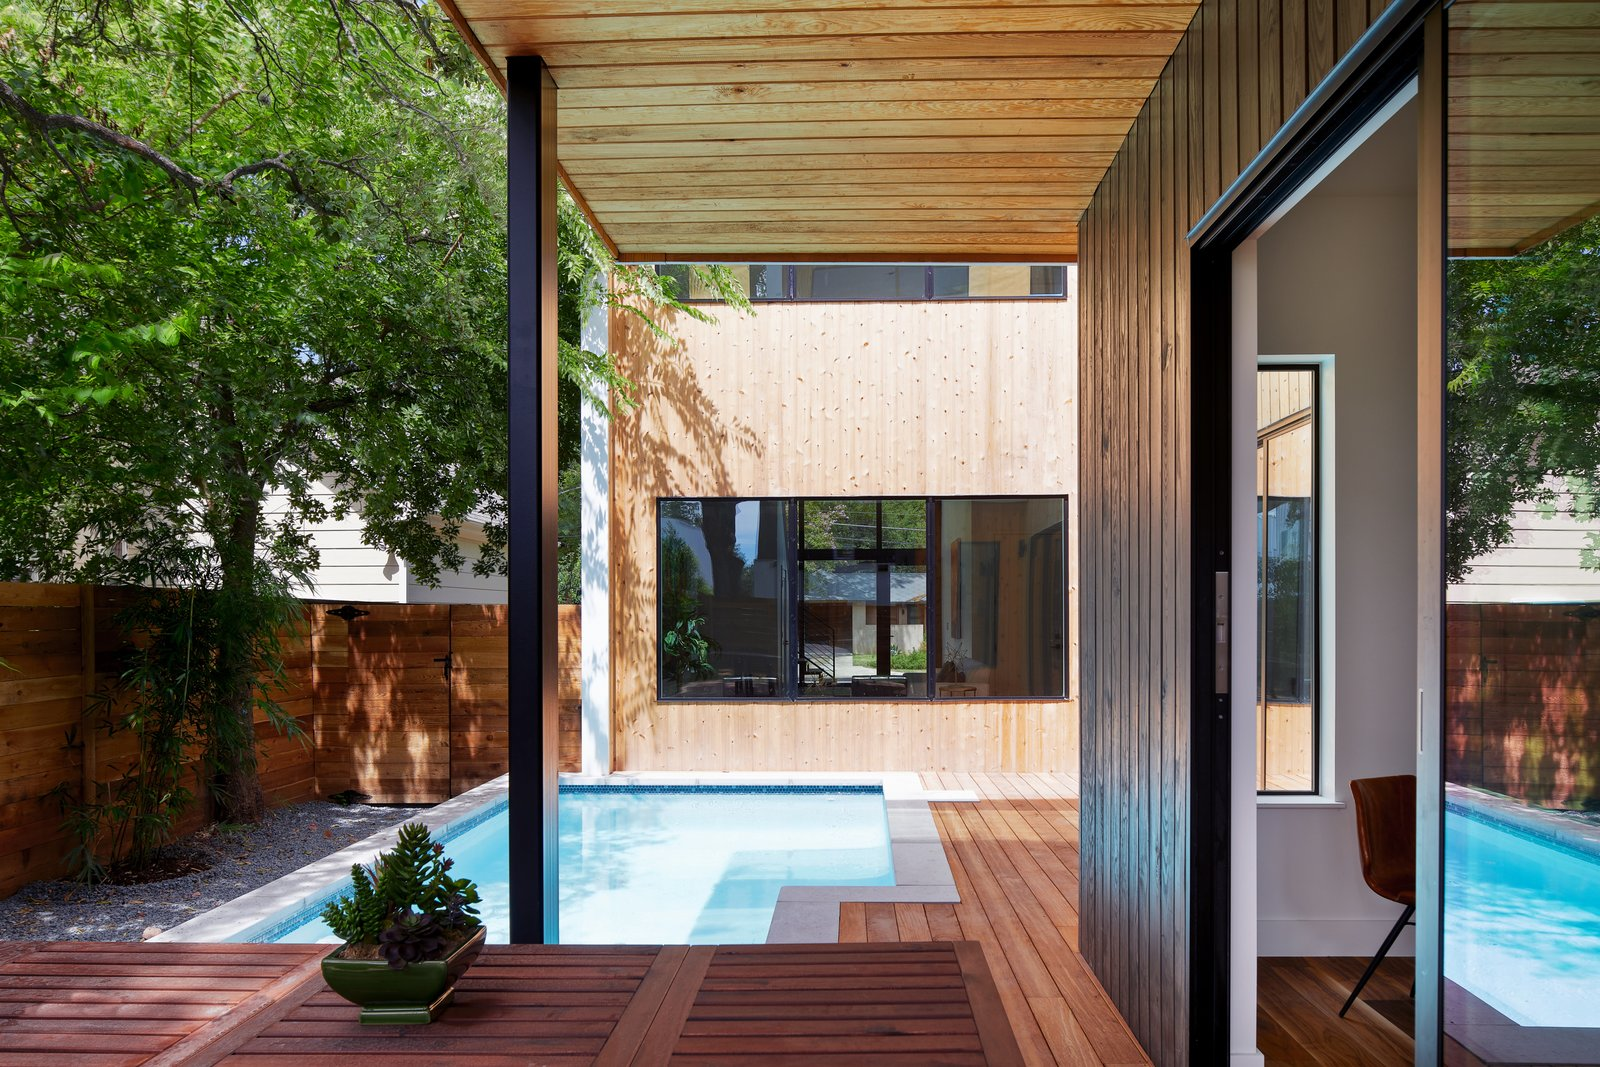 Outdoor, Standard Construction Pools, Tubs, Shower, Concrete Pools, Tubs, Shower, Shrubs, Swimming Pools, Tubs, Shower, Back Yard, Wood Patio, Porch, Deck, Small Pools, Tubs, Shower, Small Patio, Porch, Deck, Trees, Wood Fences, Wall, and Horizontal Fences, Wall Pool   Chelsea House by Davey McEathron Architecture